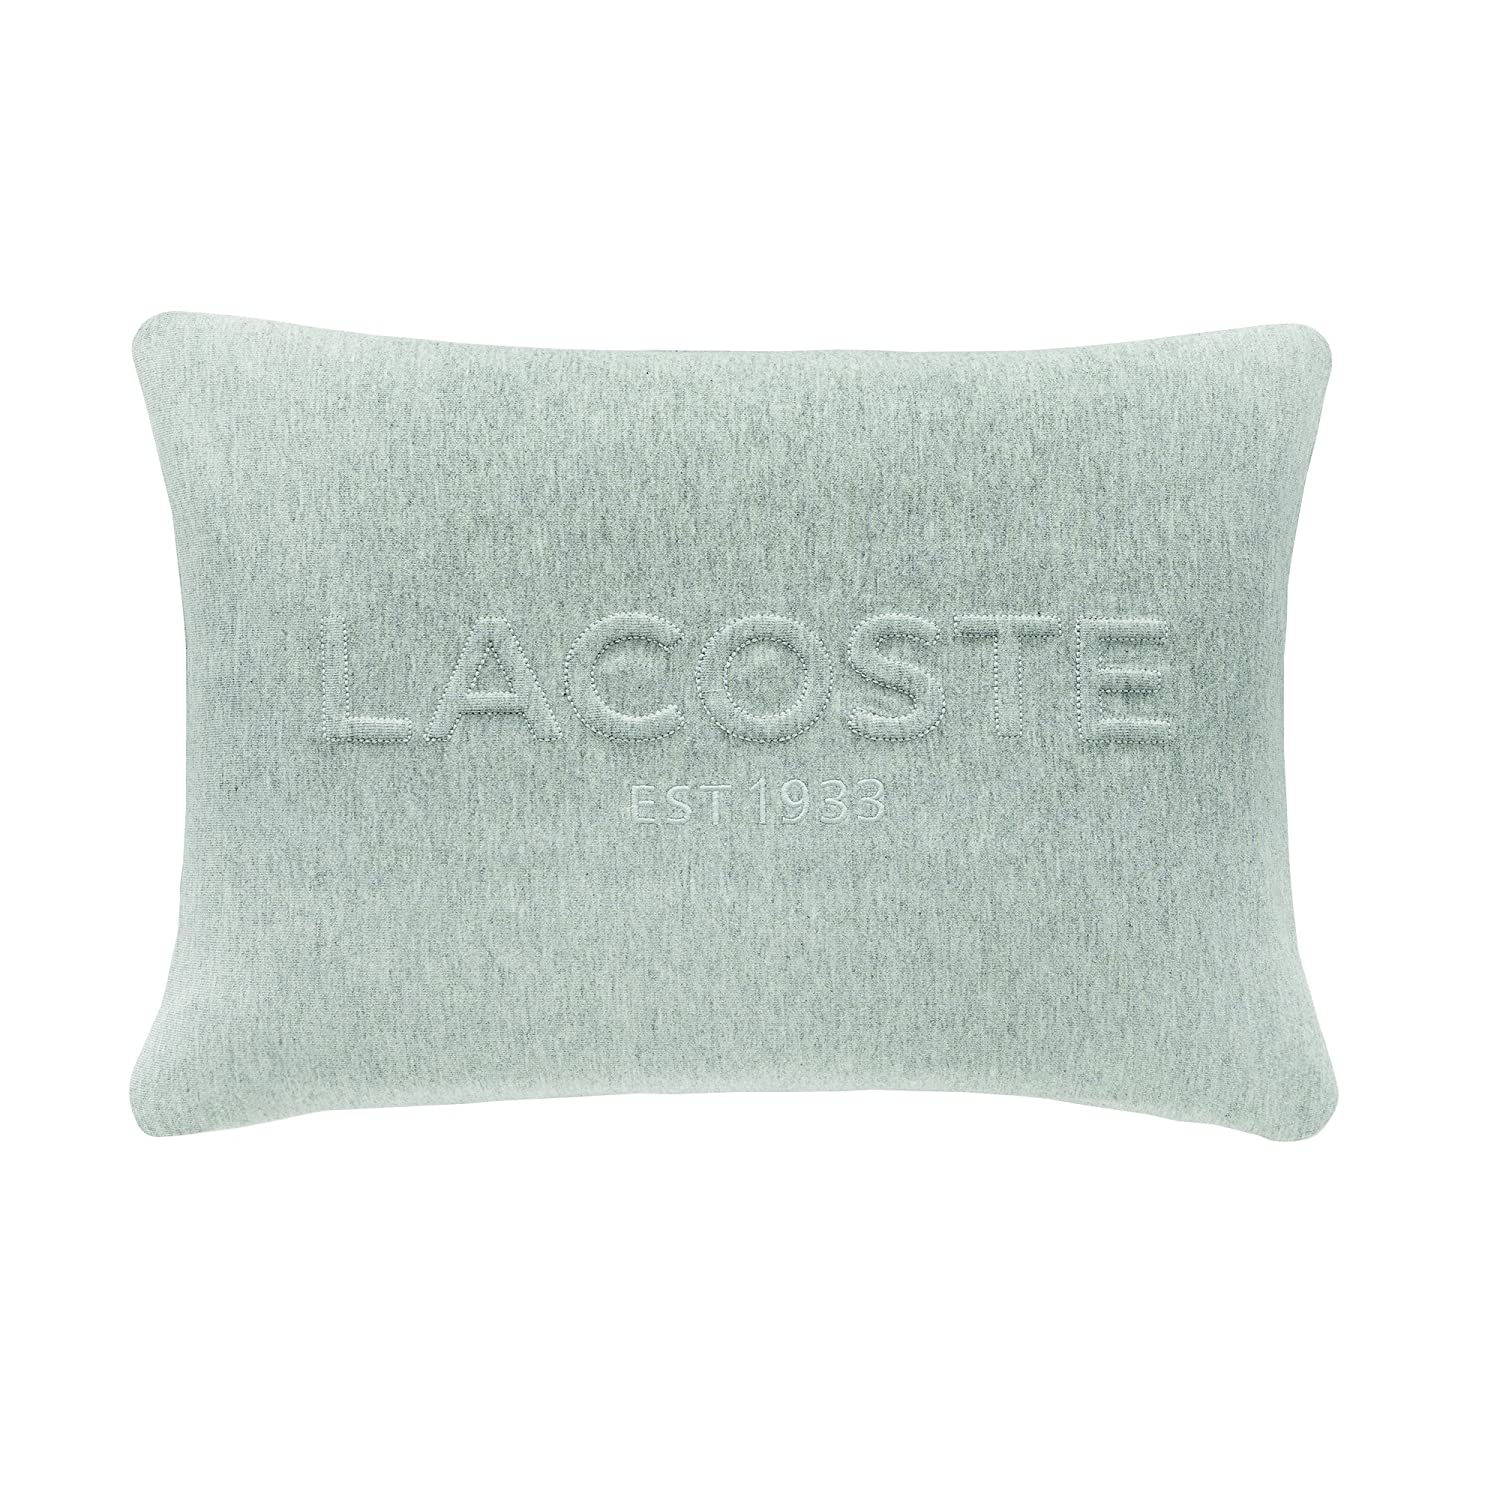 Amazon.com: Lacoste Quilted Pique almohada decorativa ...